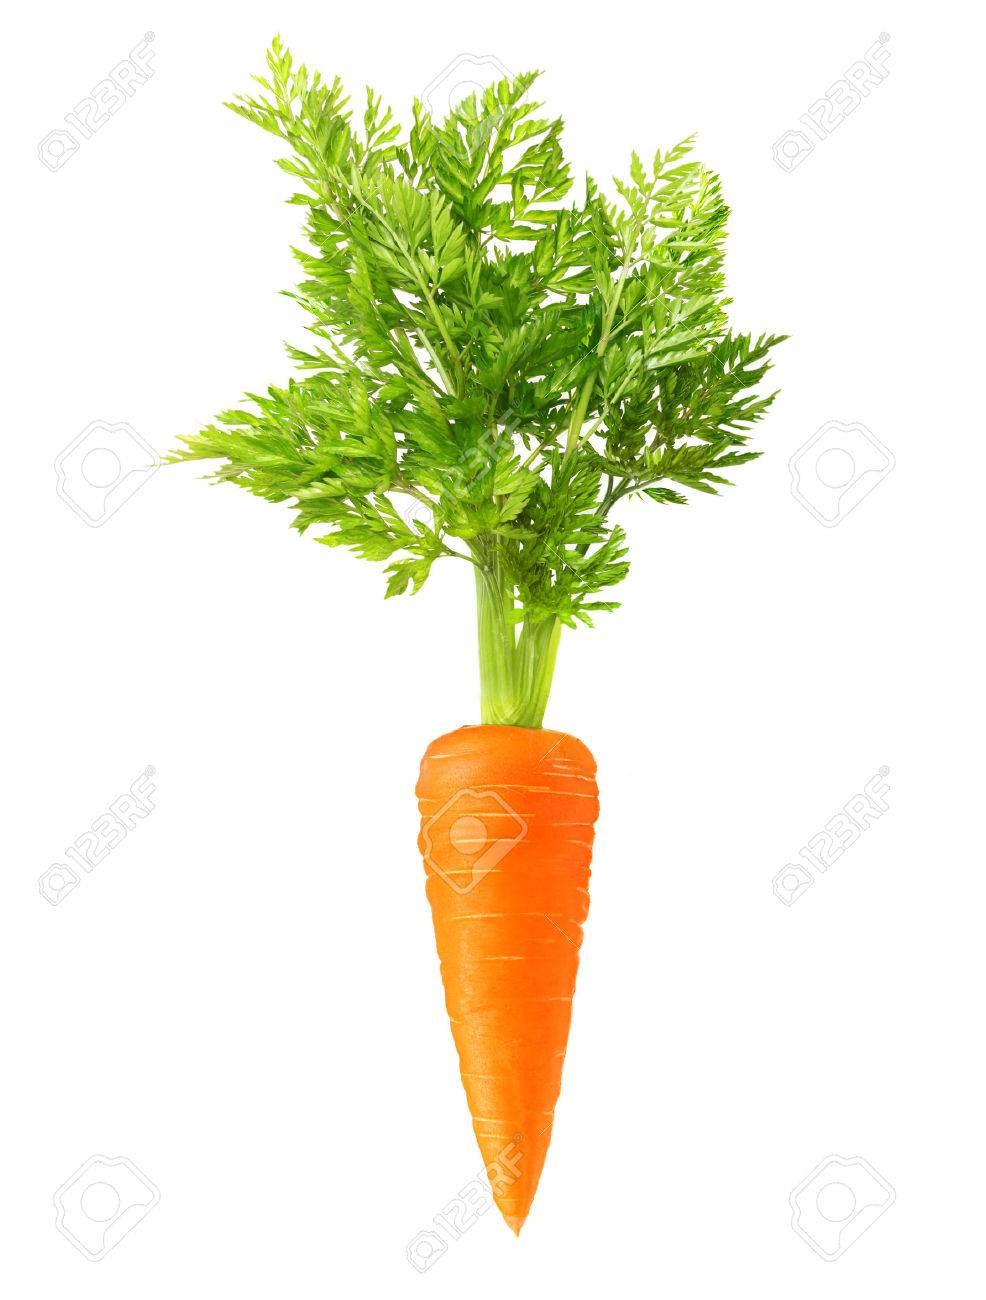 Carrot isolated on white background - 32040308